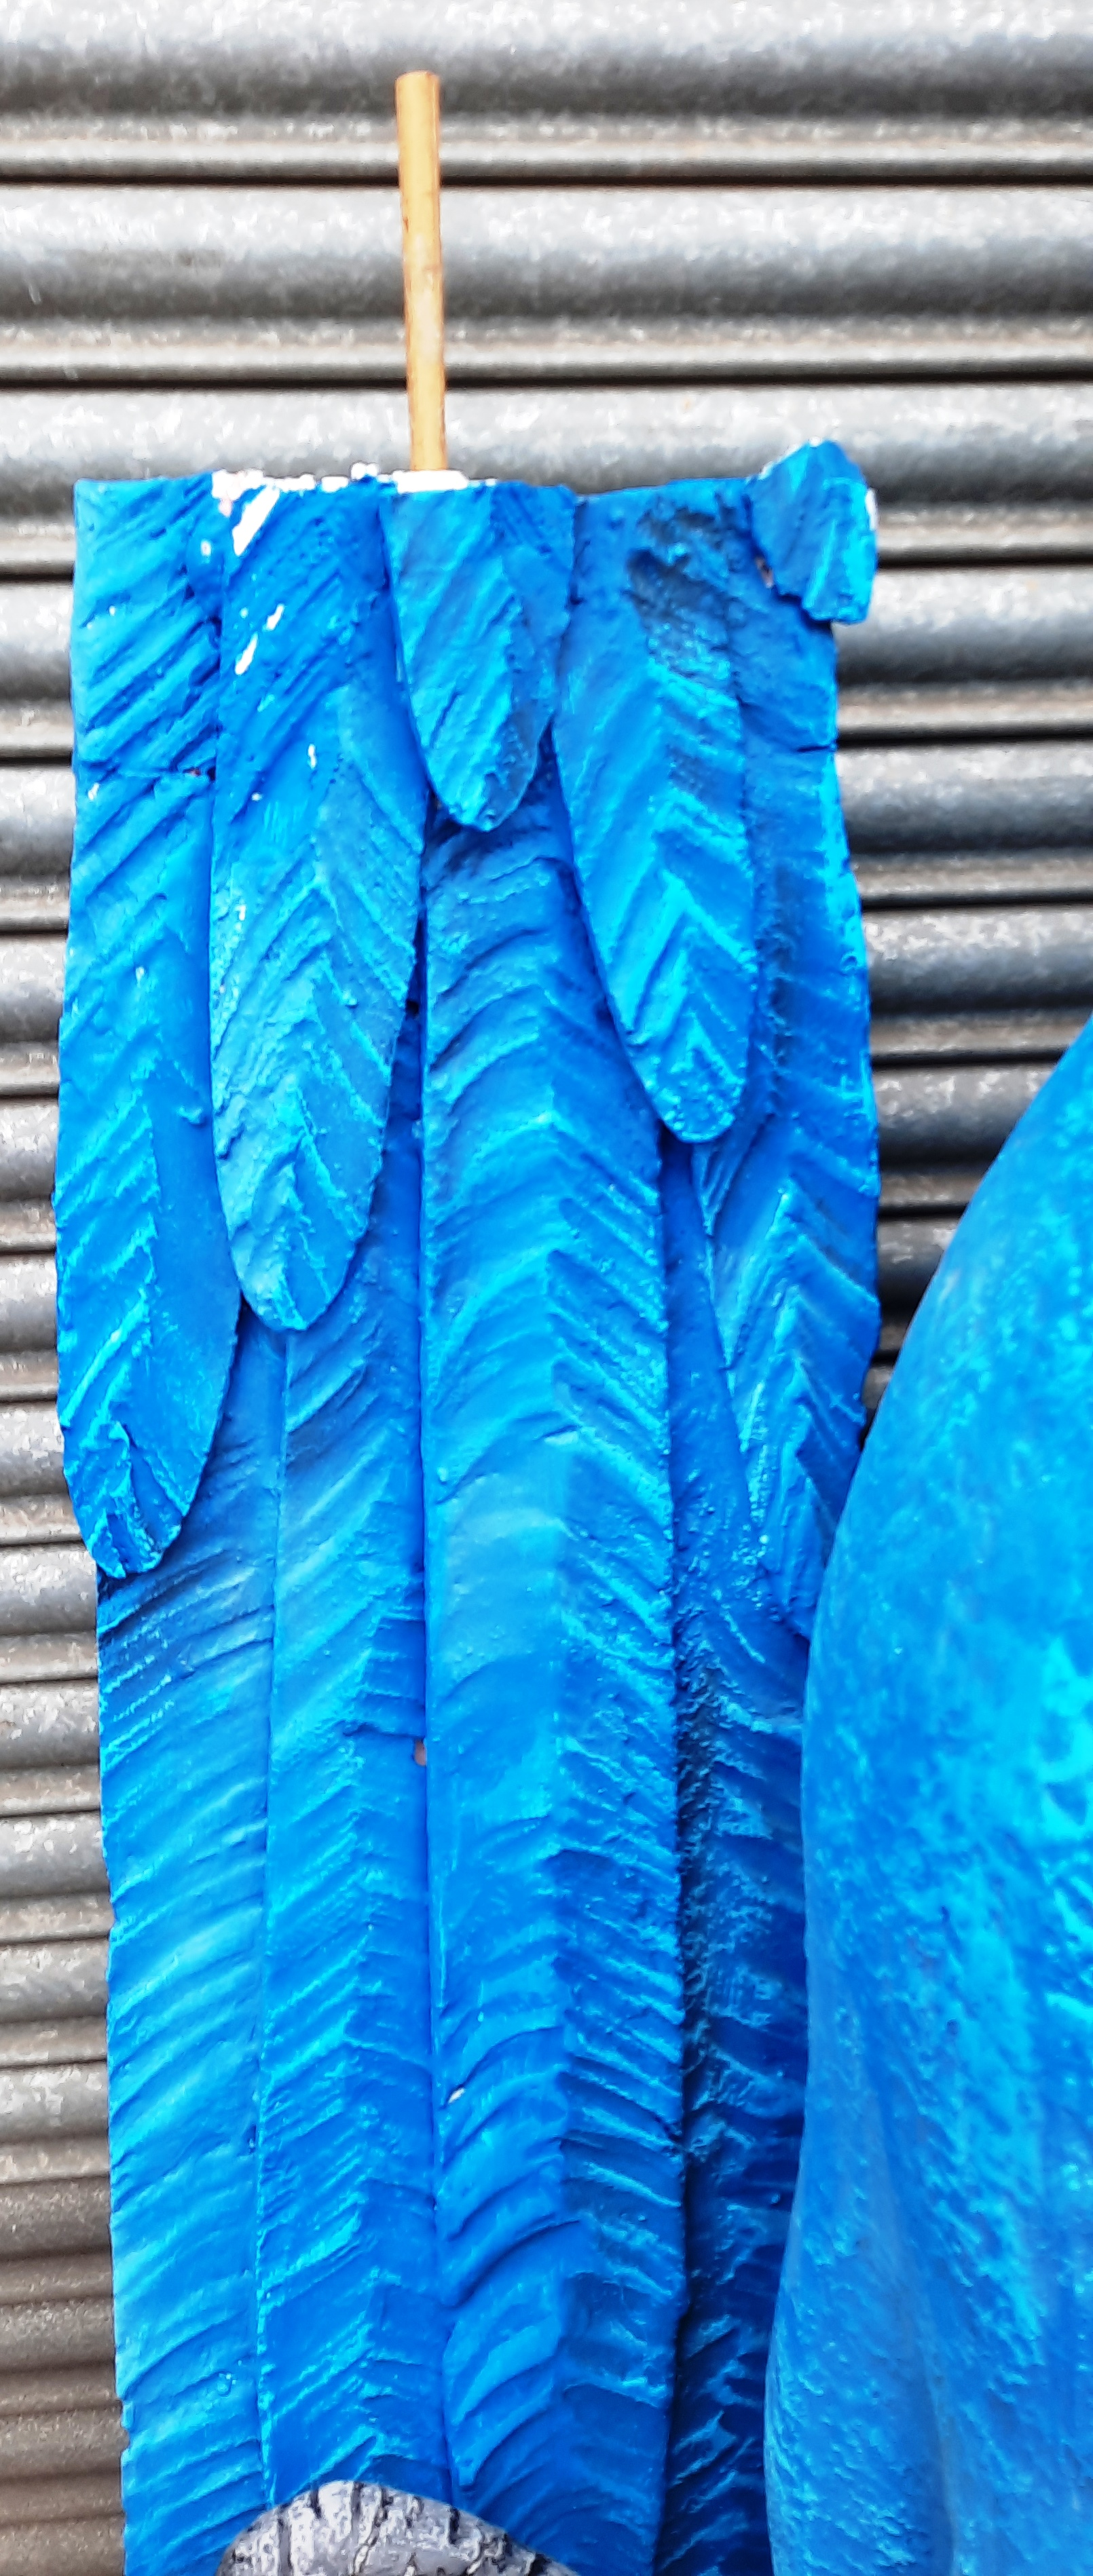 MONTY PYTHON THEMED ' DEAD PARROT SKETCH ' OVERSIZE PROP REPLICA - Image 8 of 9